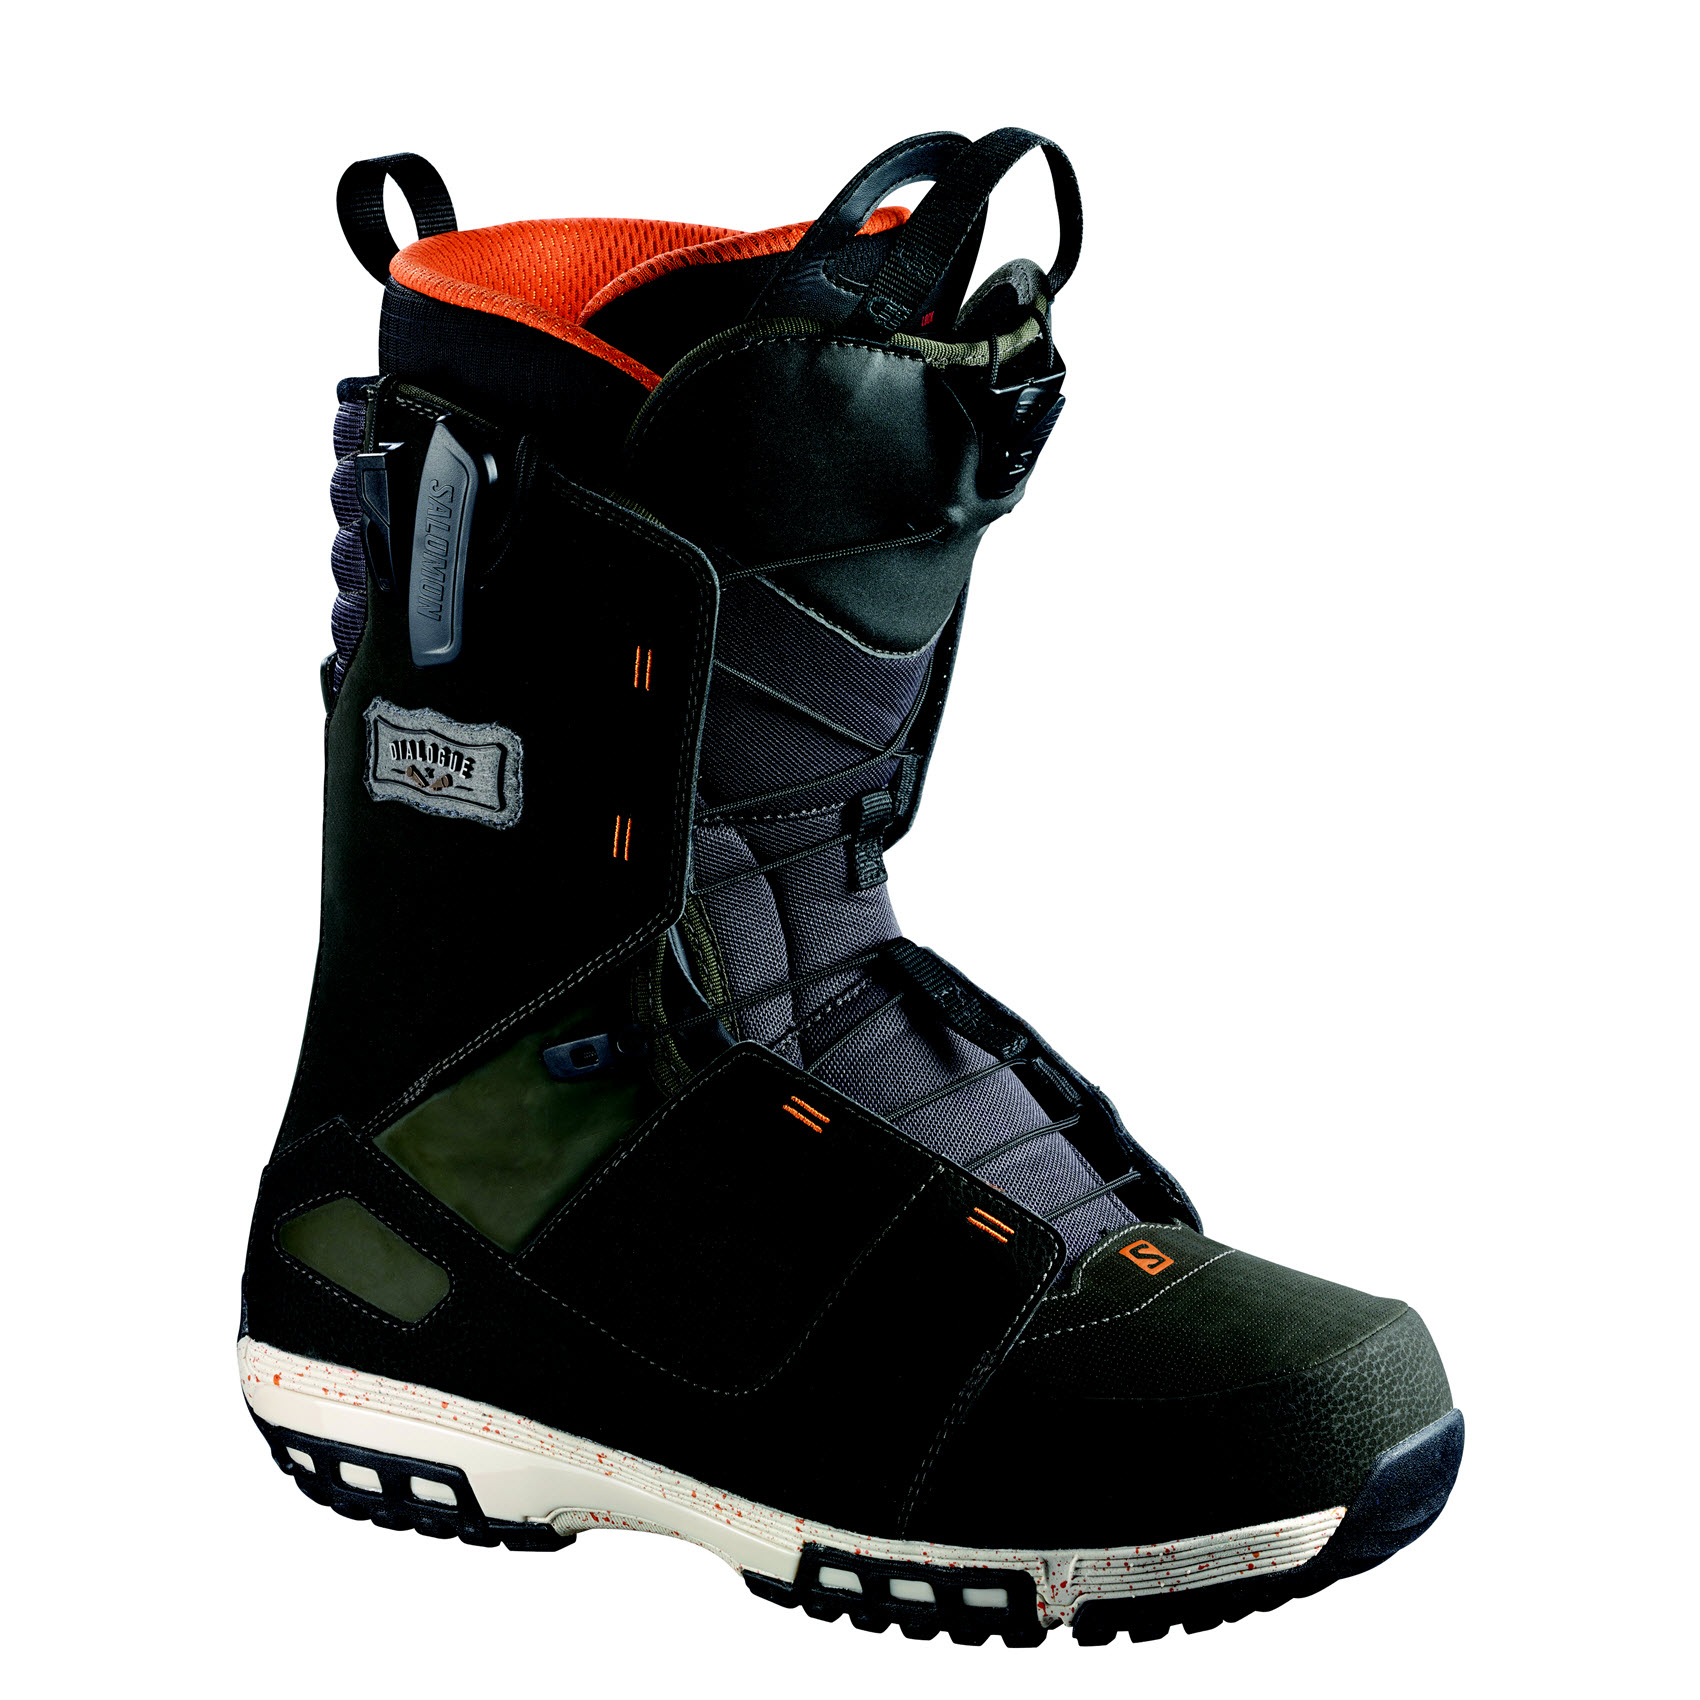 Salomon Dialogue Mens Snowboard Boots 2015 Dark Khaki Orange Black 2015